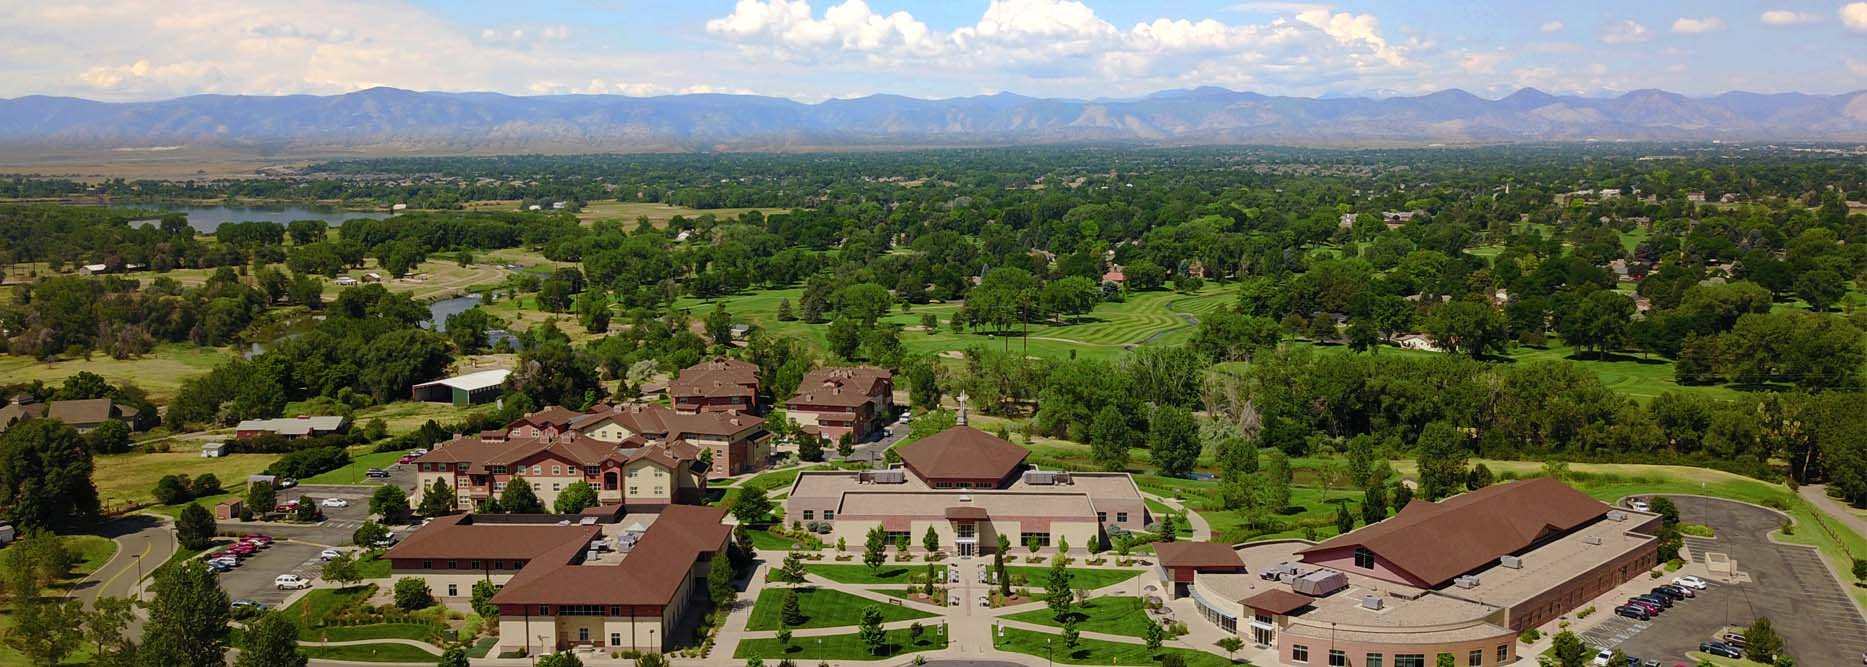 Aerial view of the Denver Campus with buildings